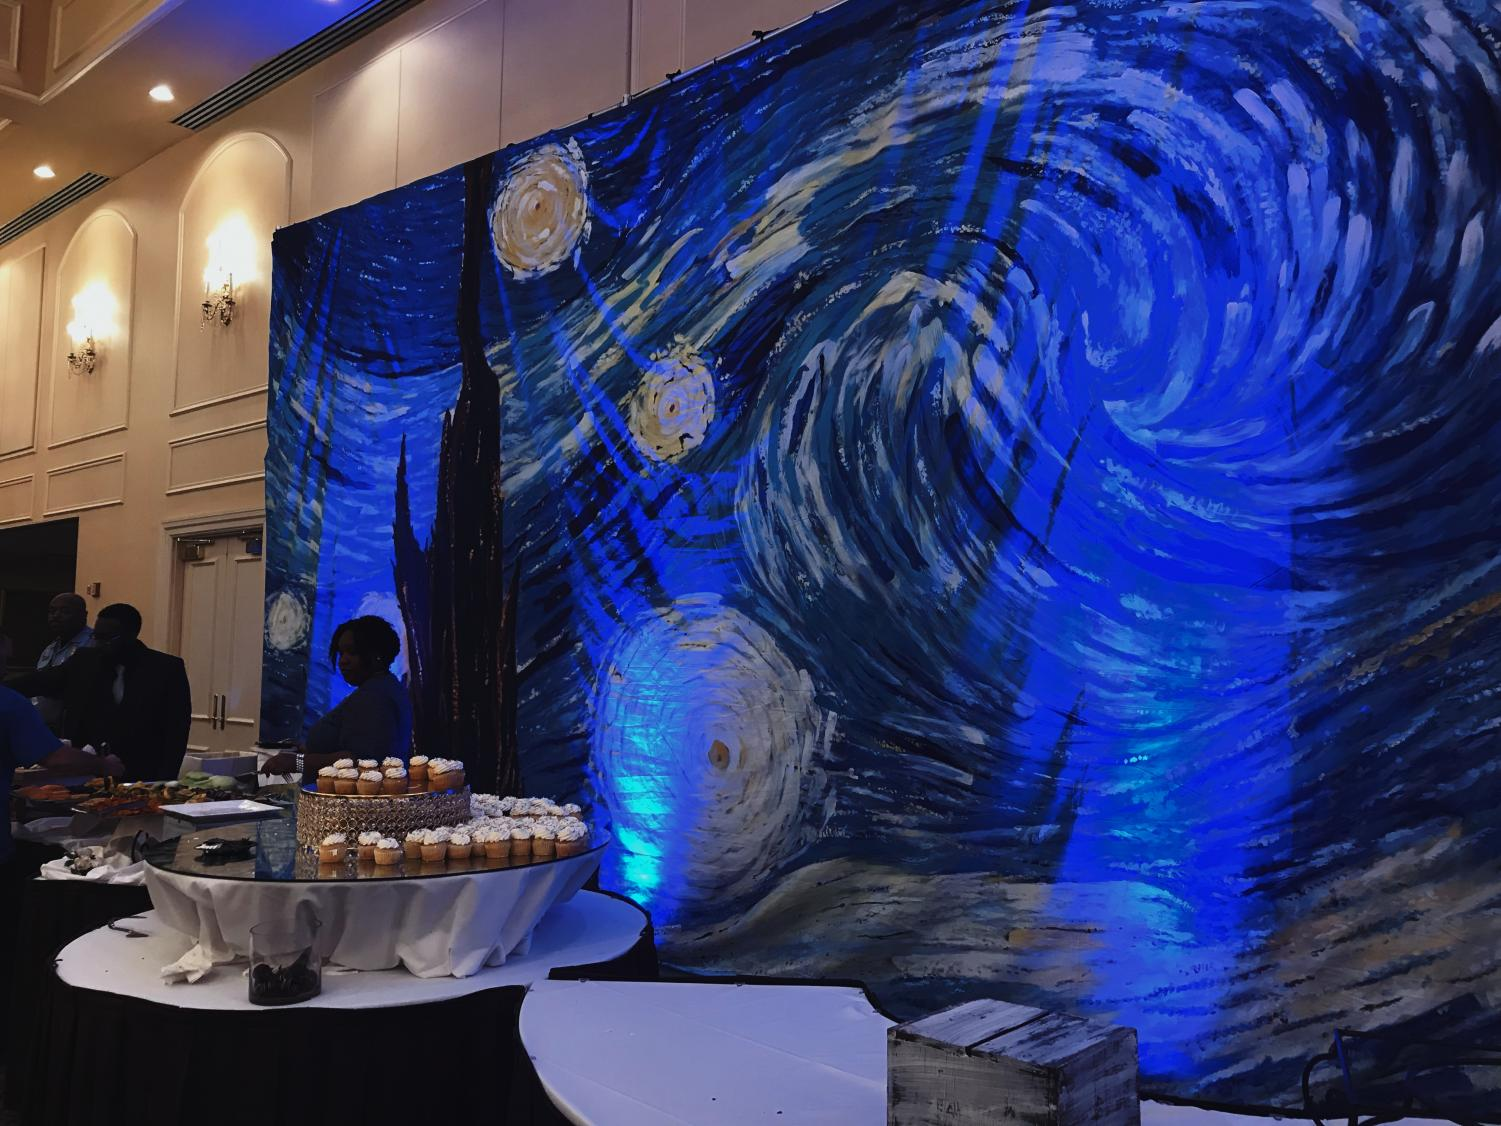 Hanging in the venue, this backdrop of Vincent van Gogh's, Starry Night gave Millbrook's prom a more romantic and artsy appeal. Millbrook students danced the night away at Friday night's prom, and also had the joy of crowning their prom king and queen, seniors Bryan Squires and Raya Coley.